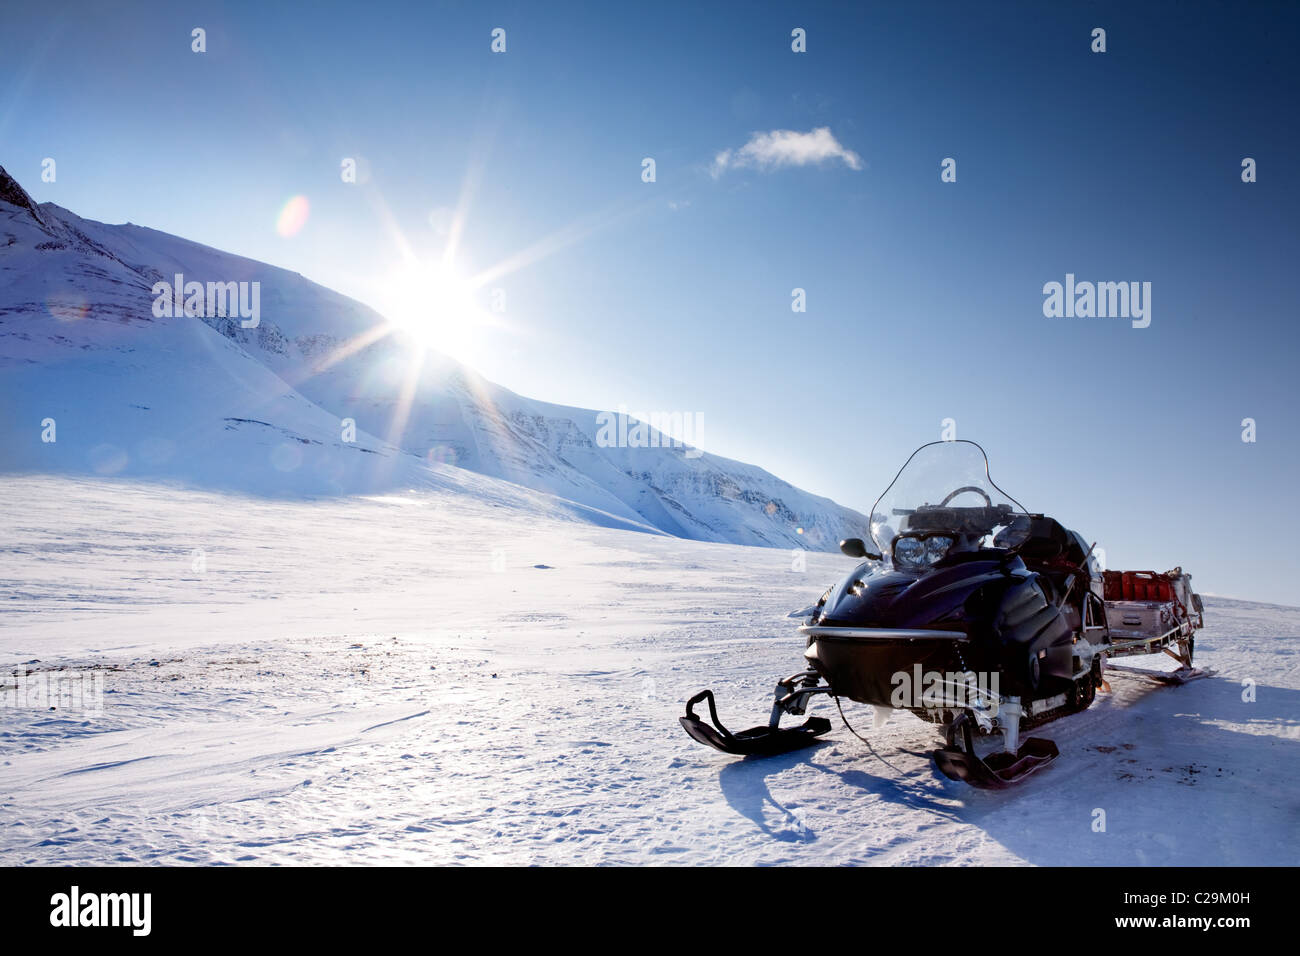 A snowmobile in a winter mountain landscape - Stock Image